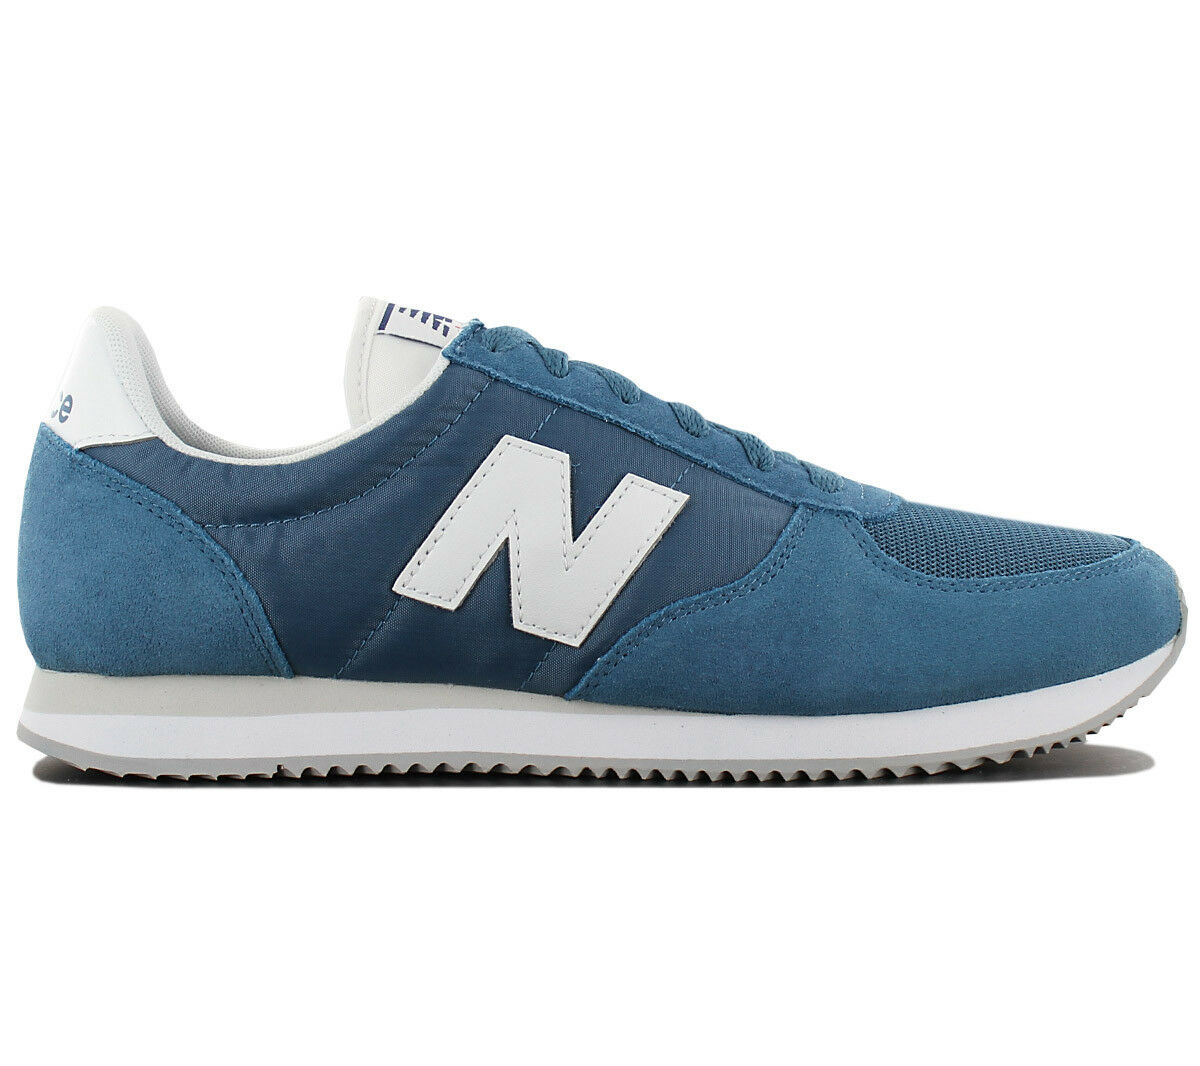 New Balance 220 Men's Sneakers shoes Sneakers Trainers Ml220 420 U220cb New